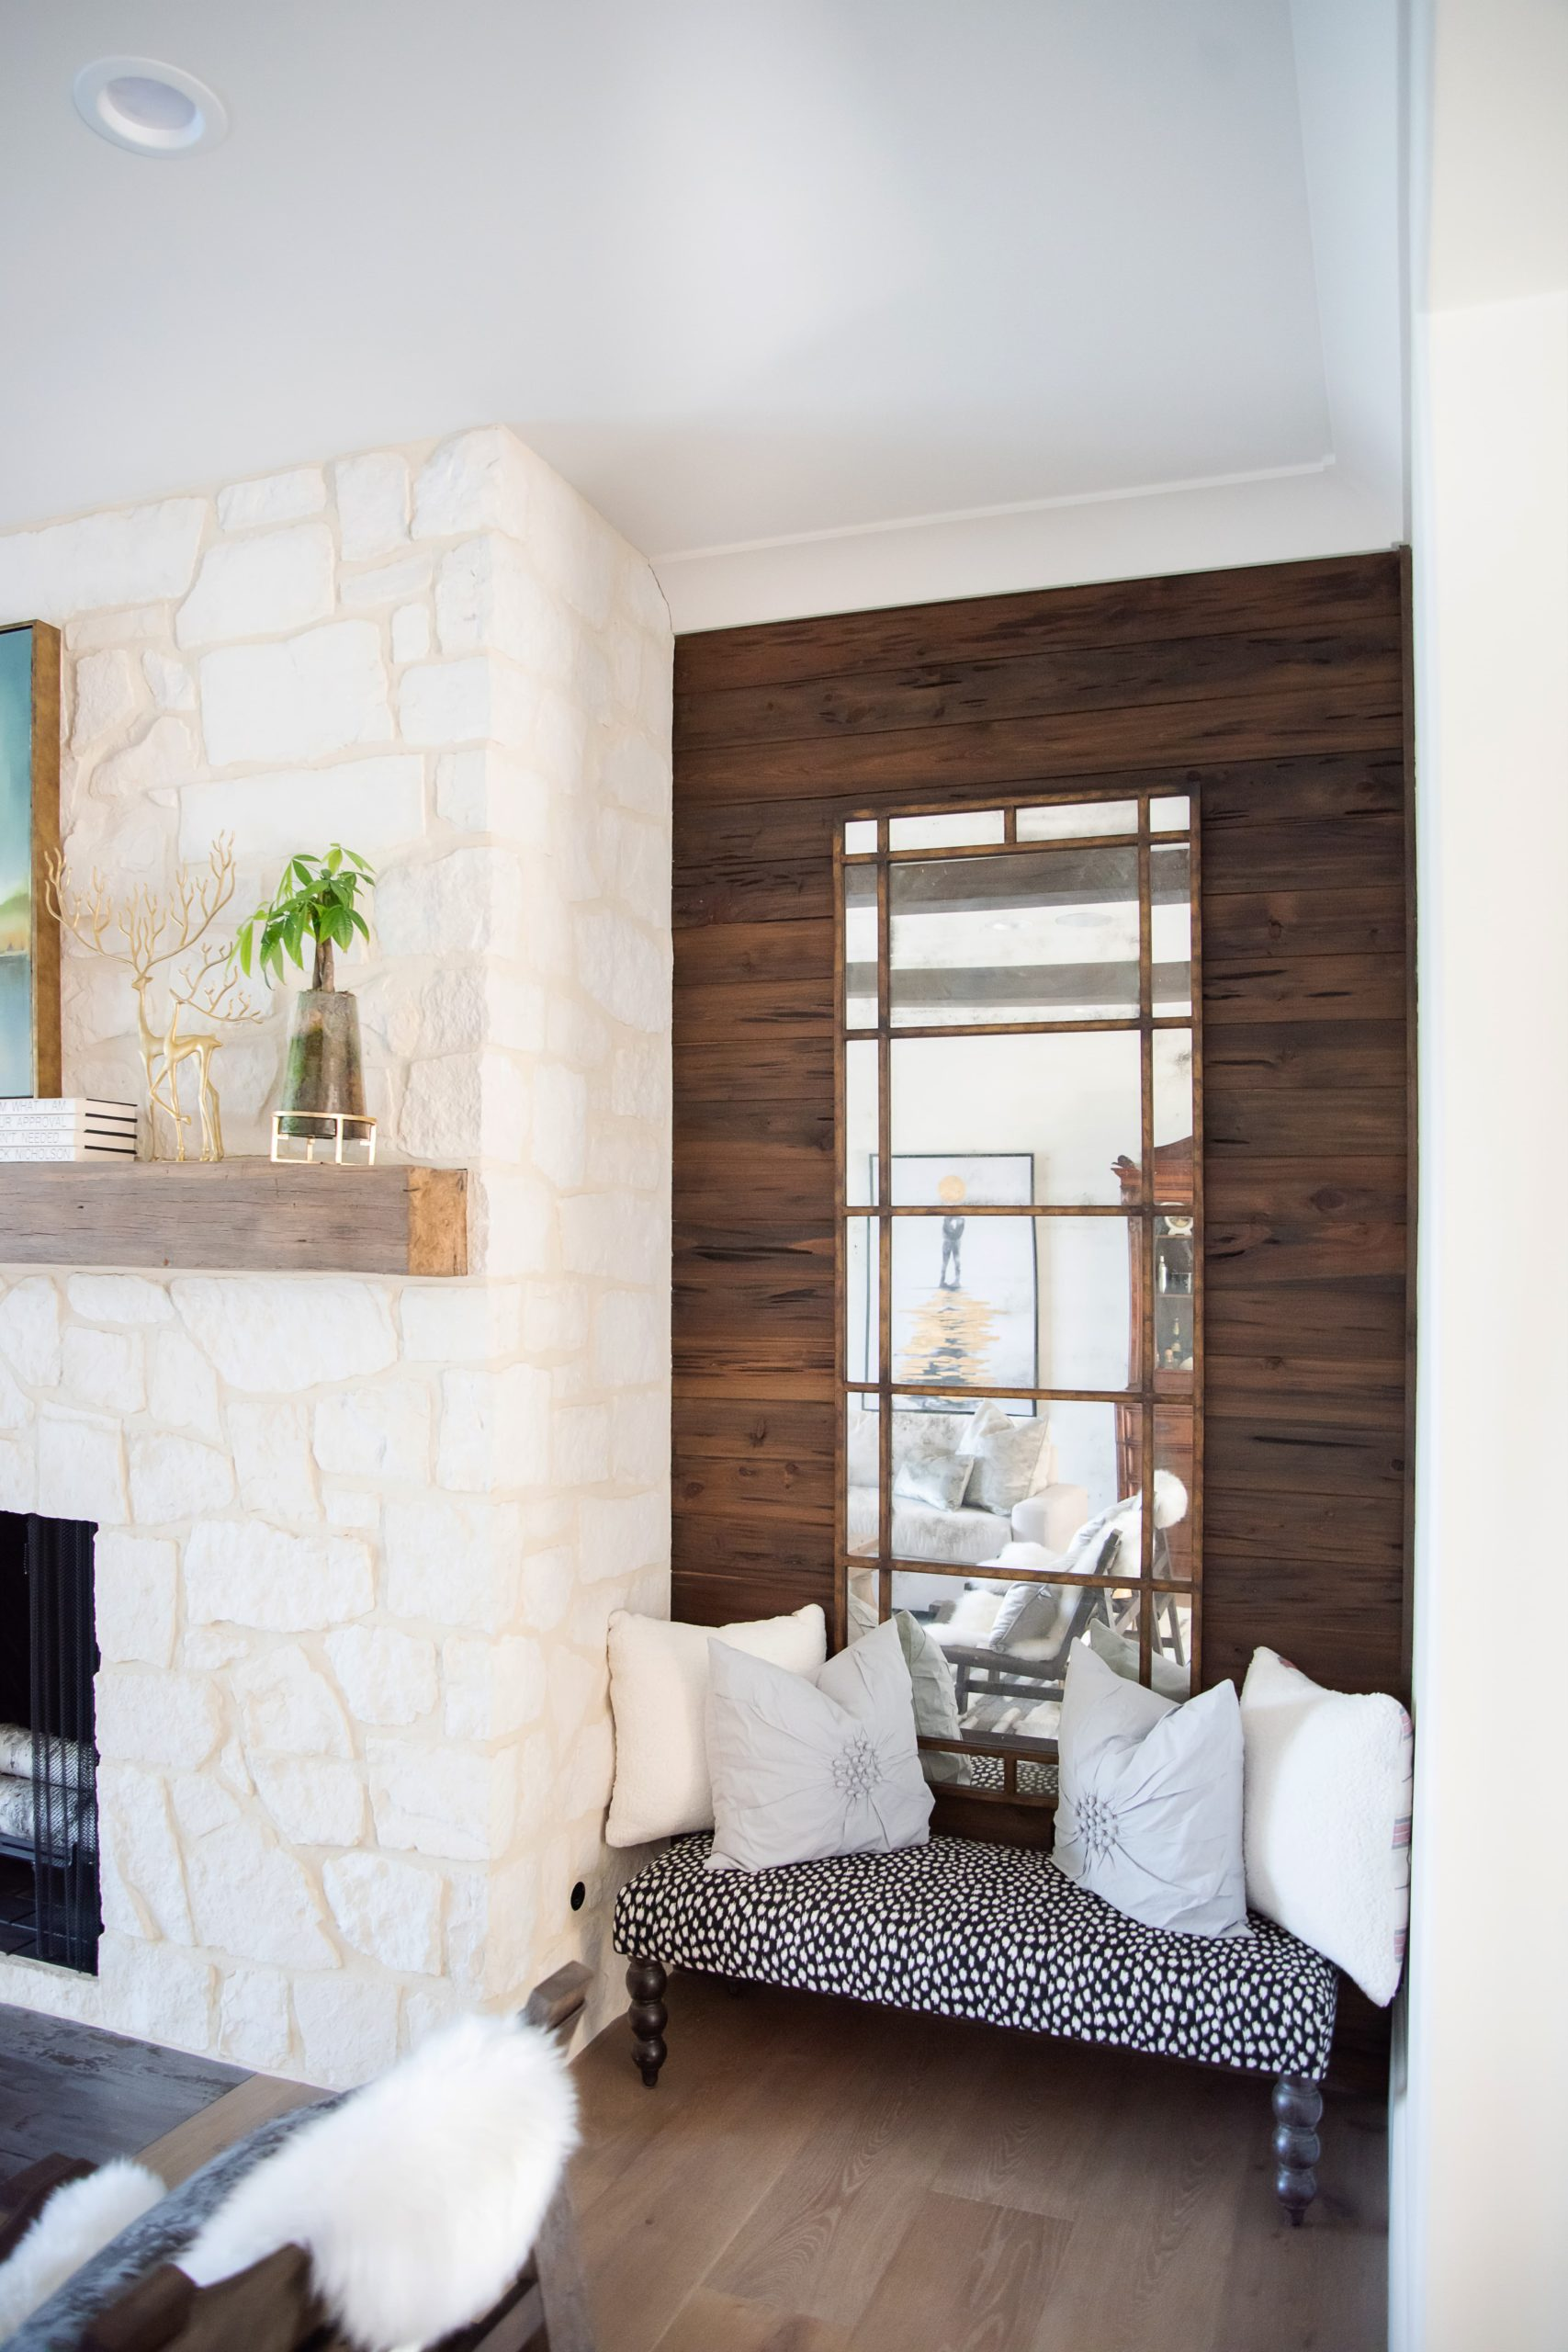 Southend Reclaimed - Antique White Oak Solid Mantel and Pecky Cypress Wall Paneling